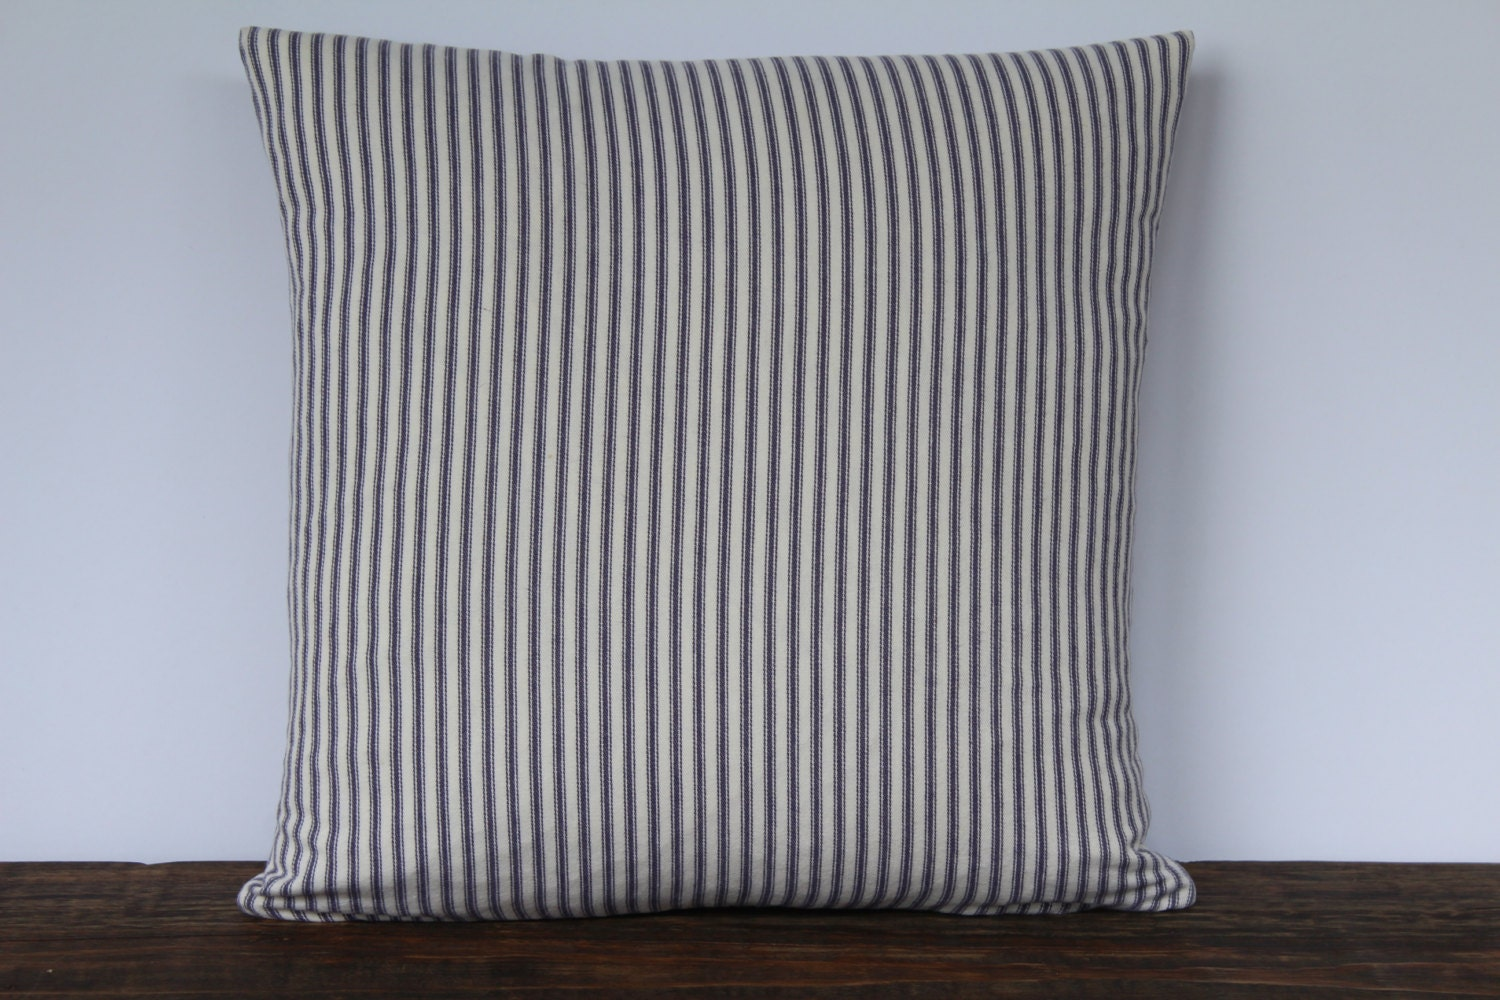 Throw Pillow Covers Farmhouse : Farmhouse Blue French Ticking Pillow Cover Decorative Pillow